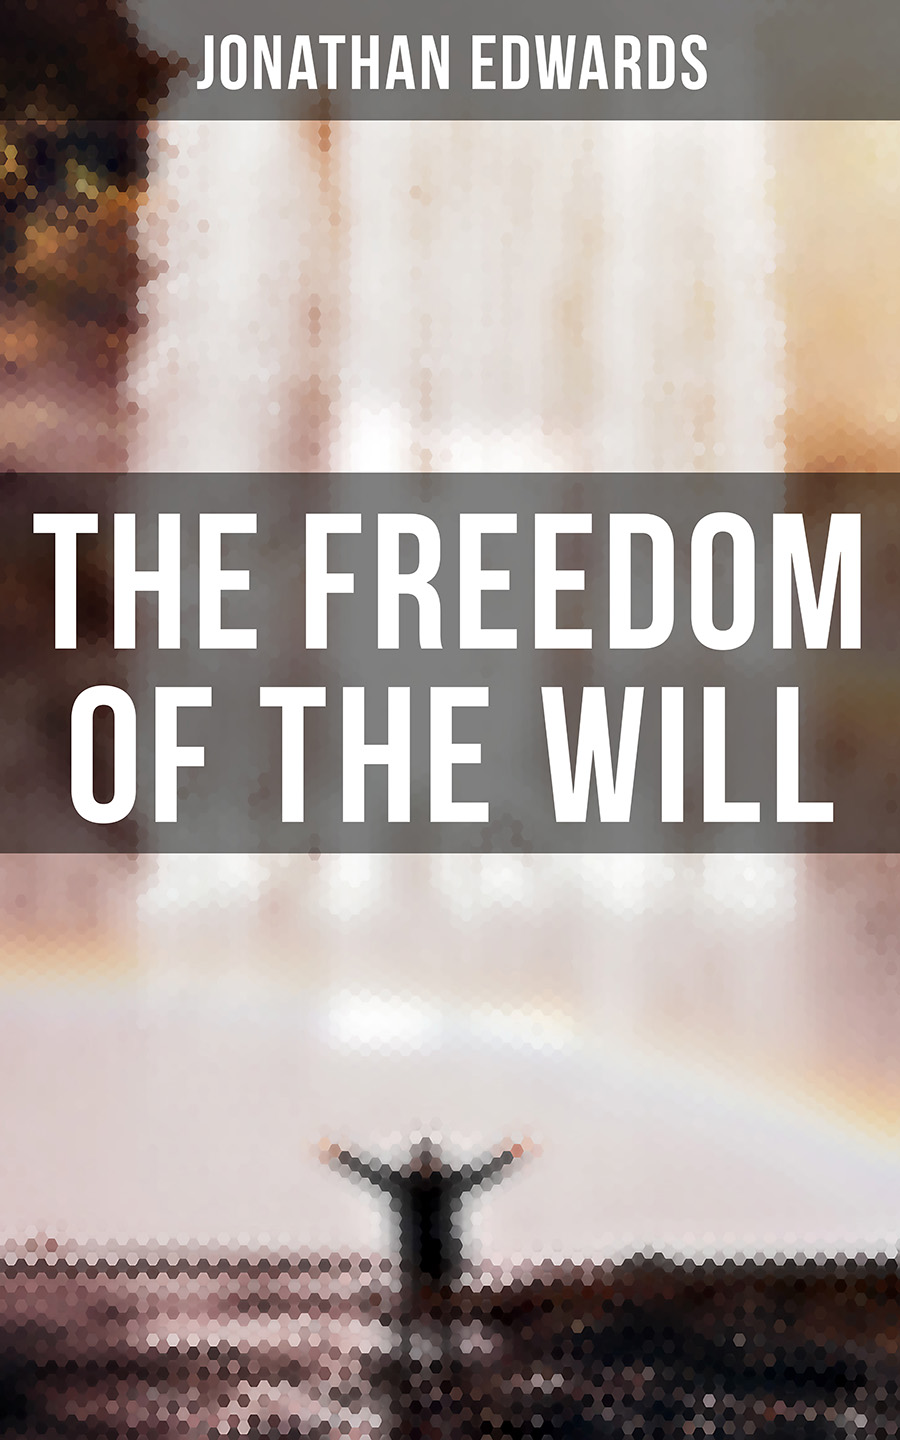 Jonathan Edwards The Freedom of the Will